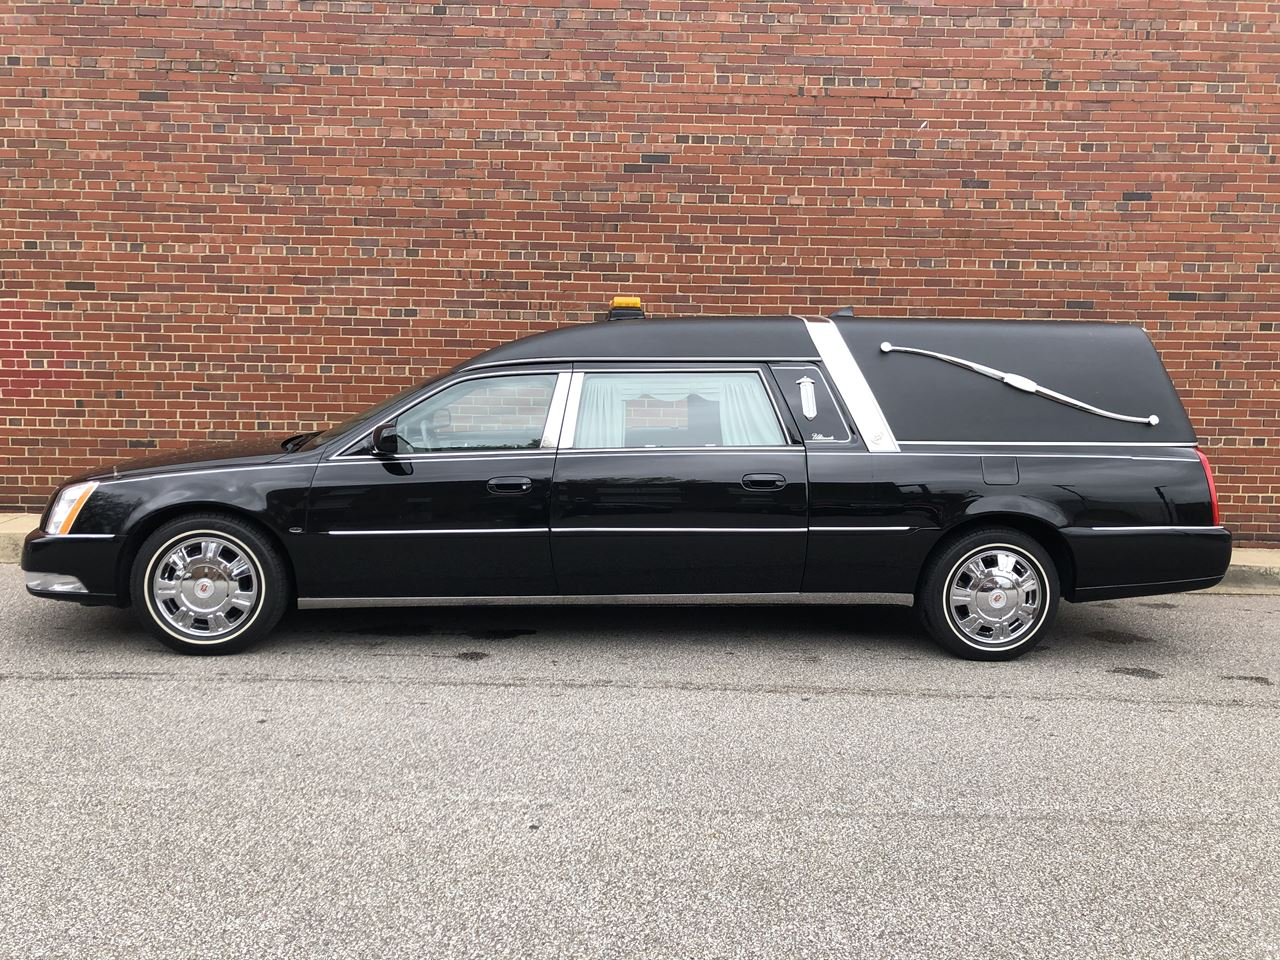 2011 Cadillac Eagle Kingsley Hearse 18 17